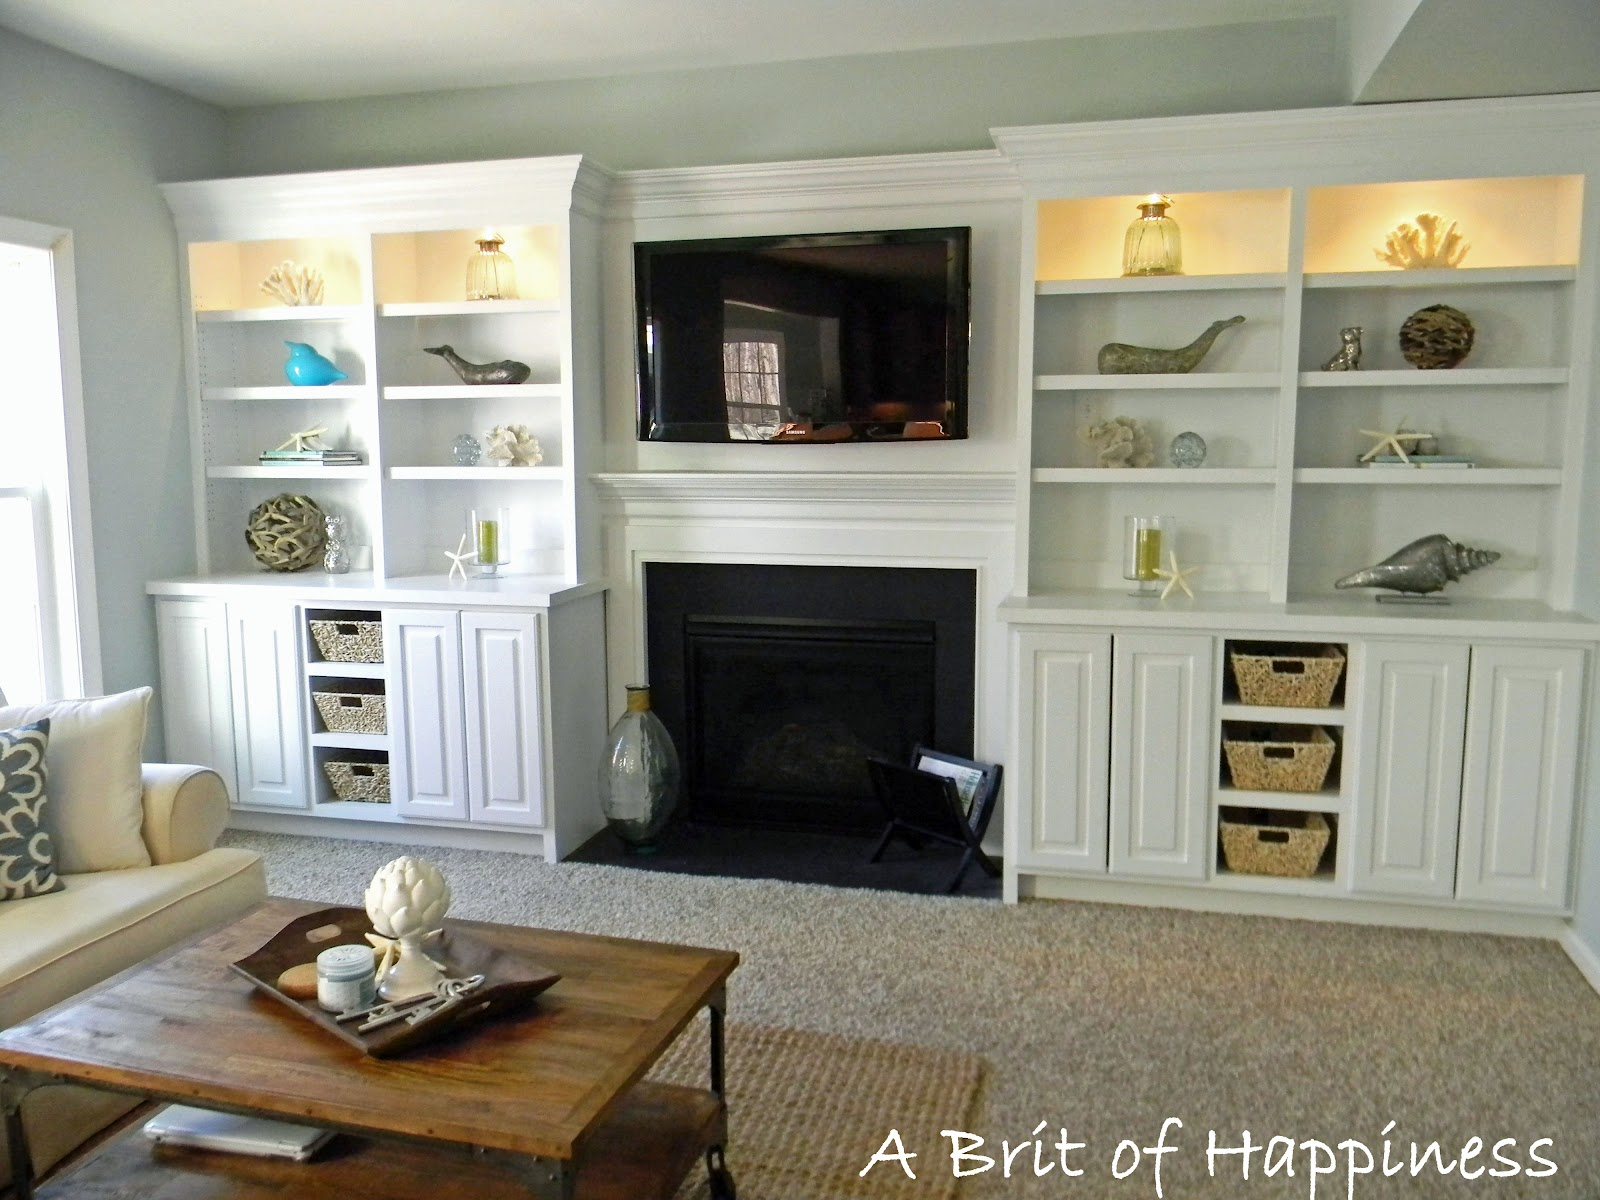 Seaside interiors family room reveal for Built ins living room ideas